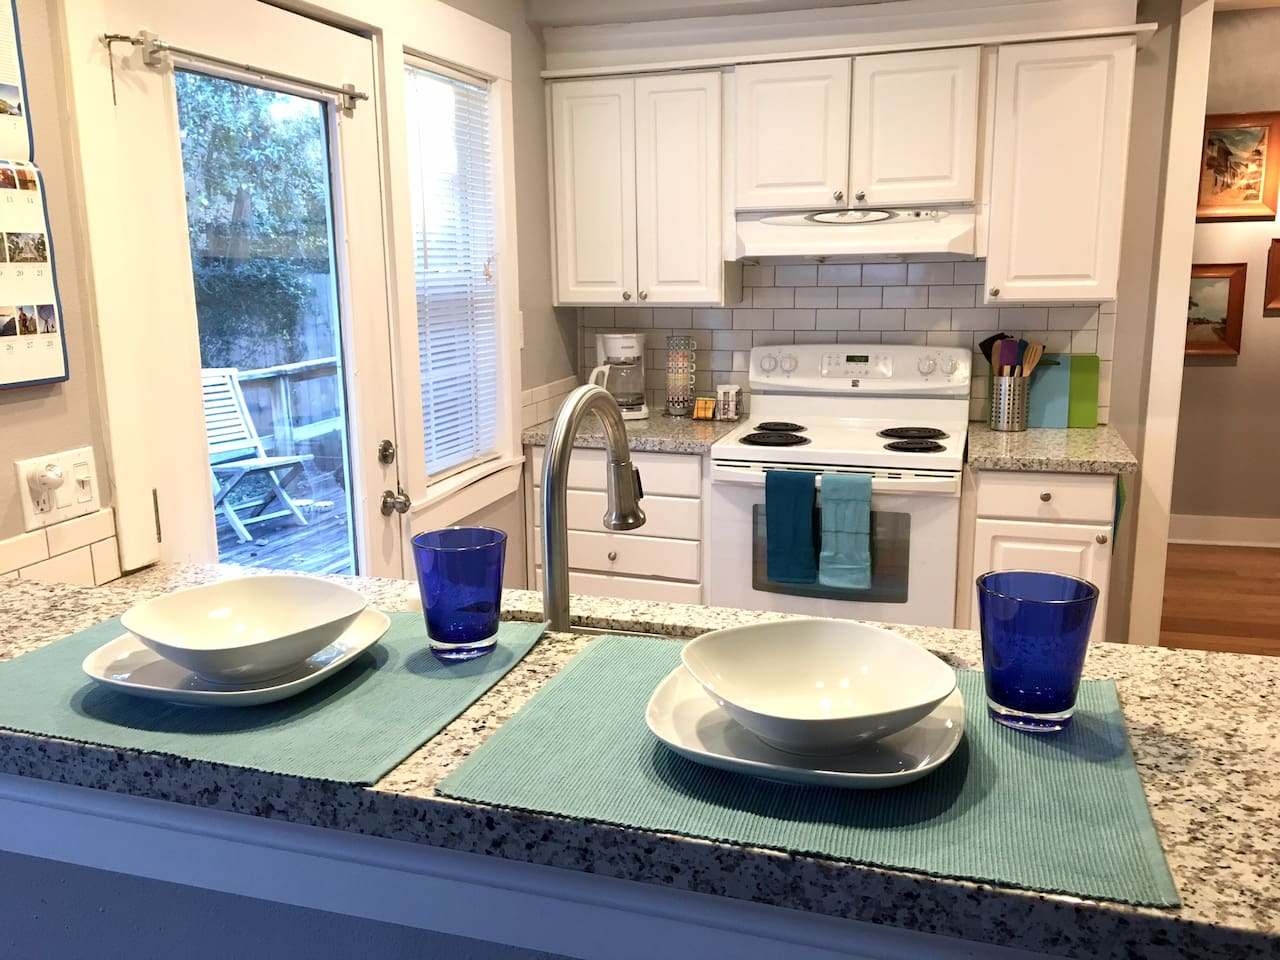 Modern and fully equipped kitchen with granite countertops.